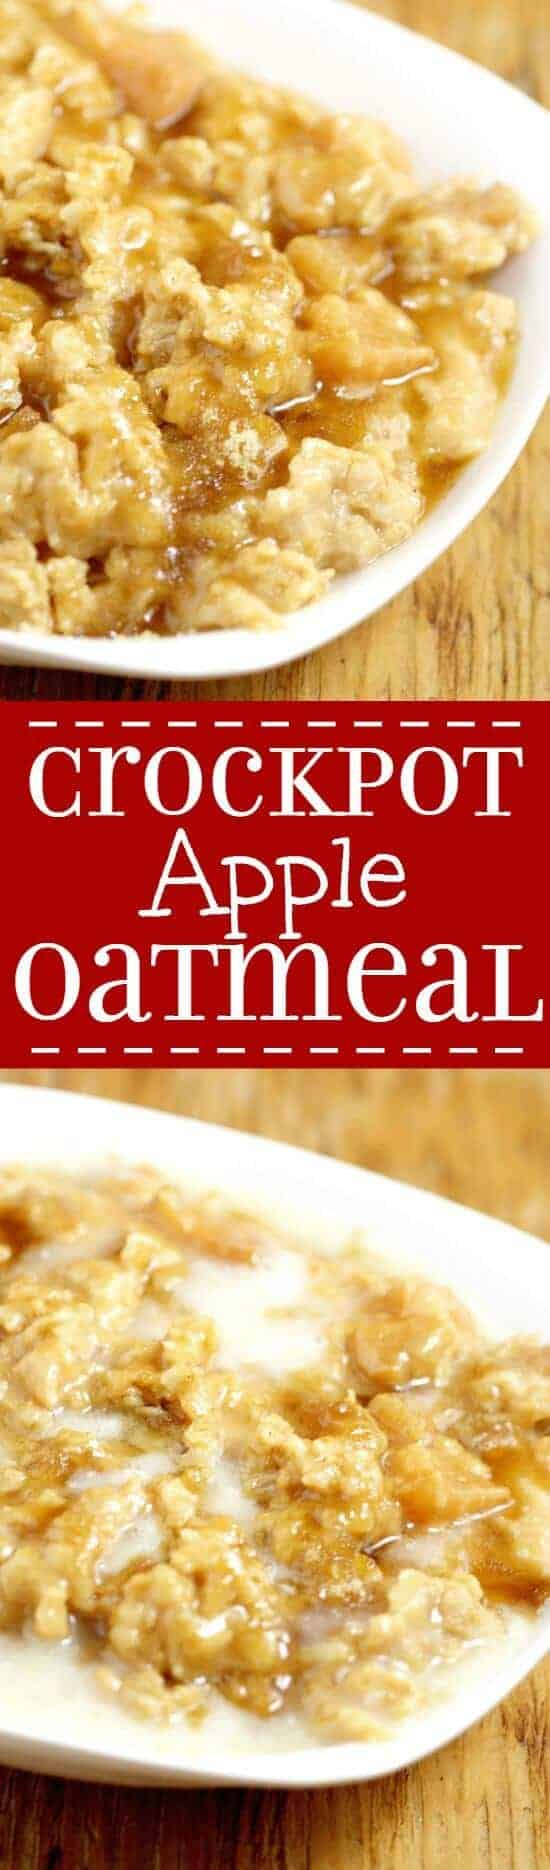 Crock Pot Apple Oatmeal | The Gracious Wife